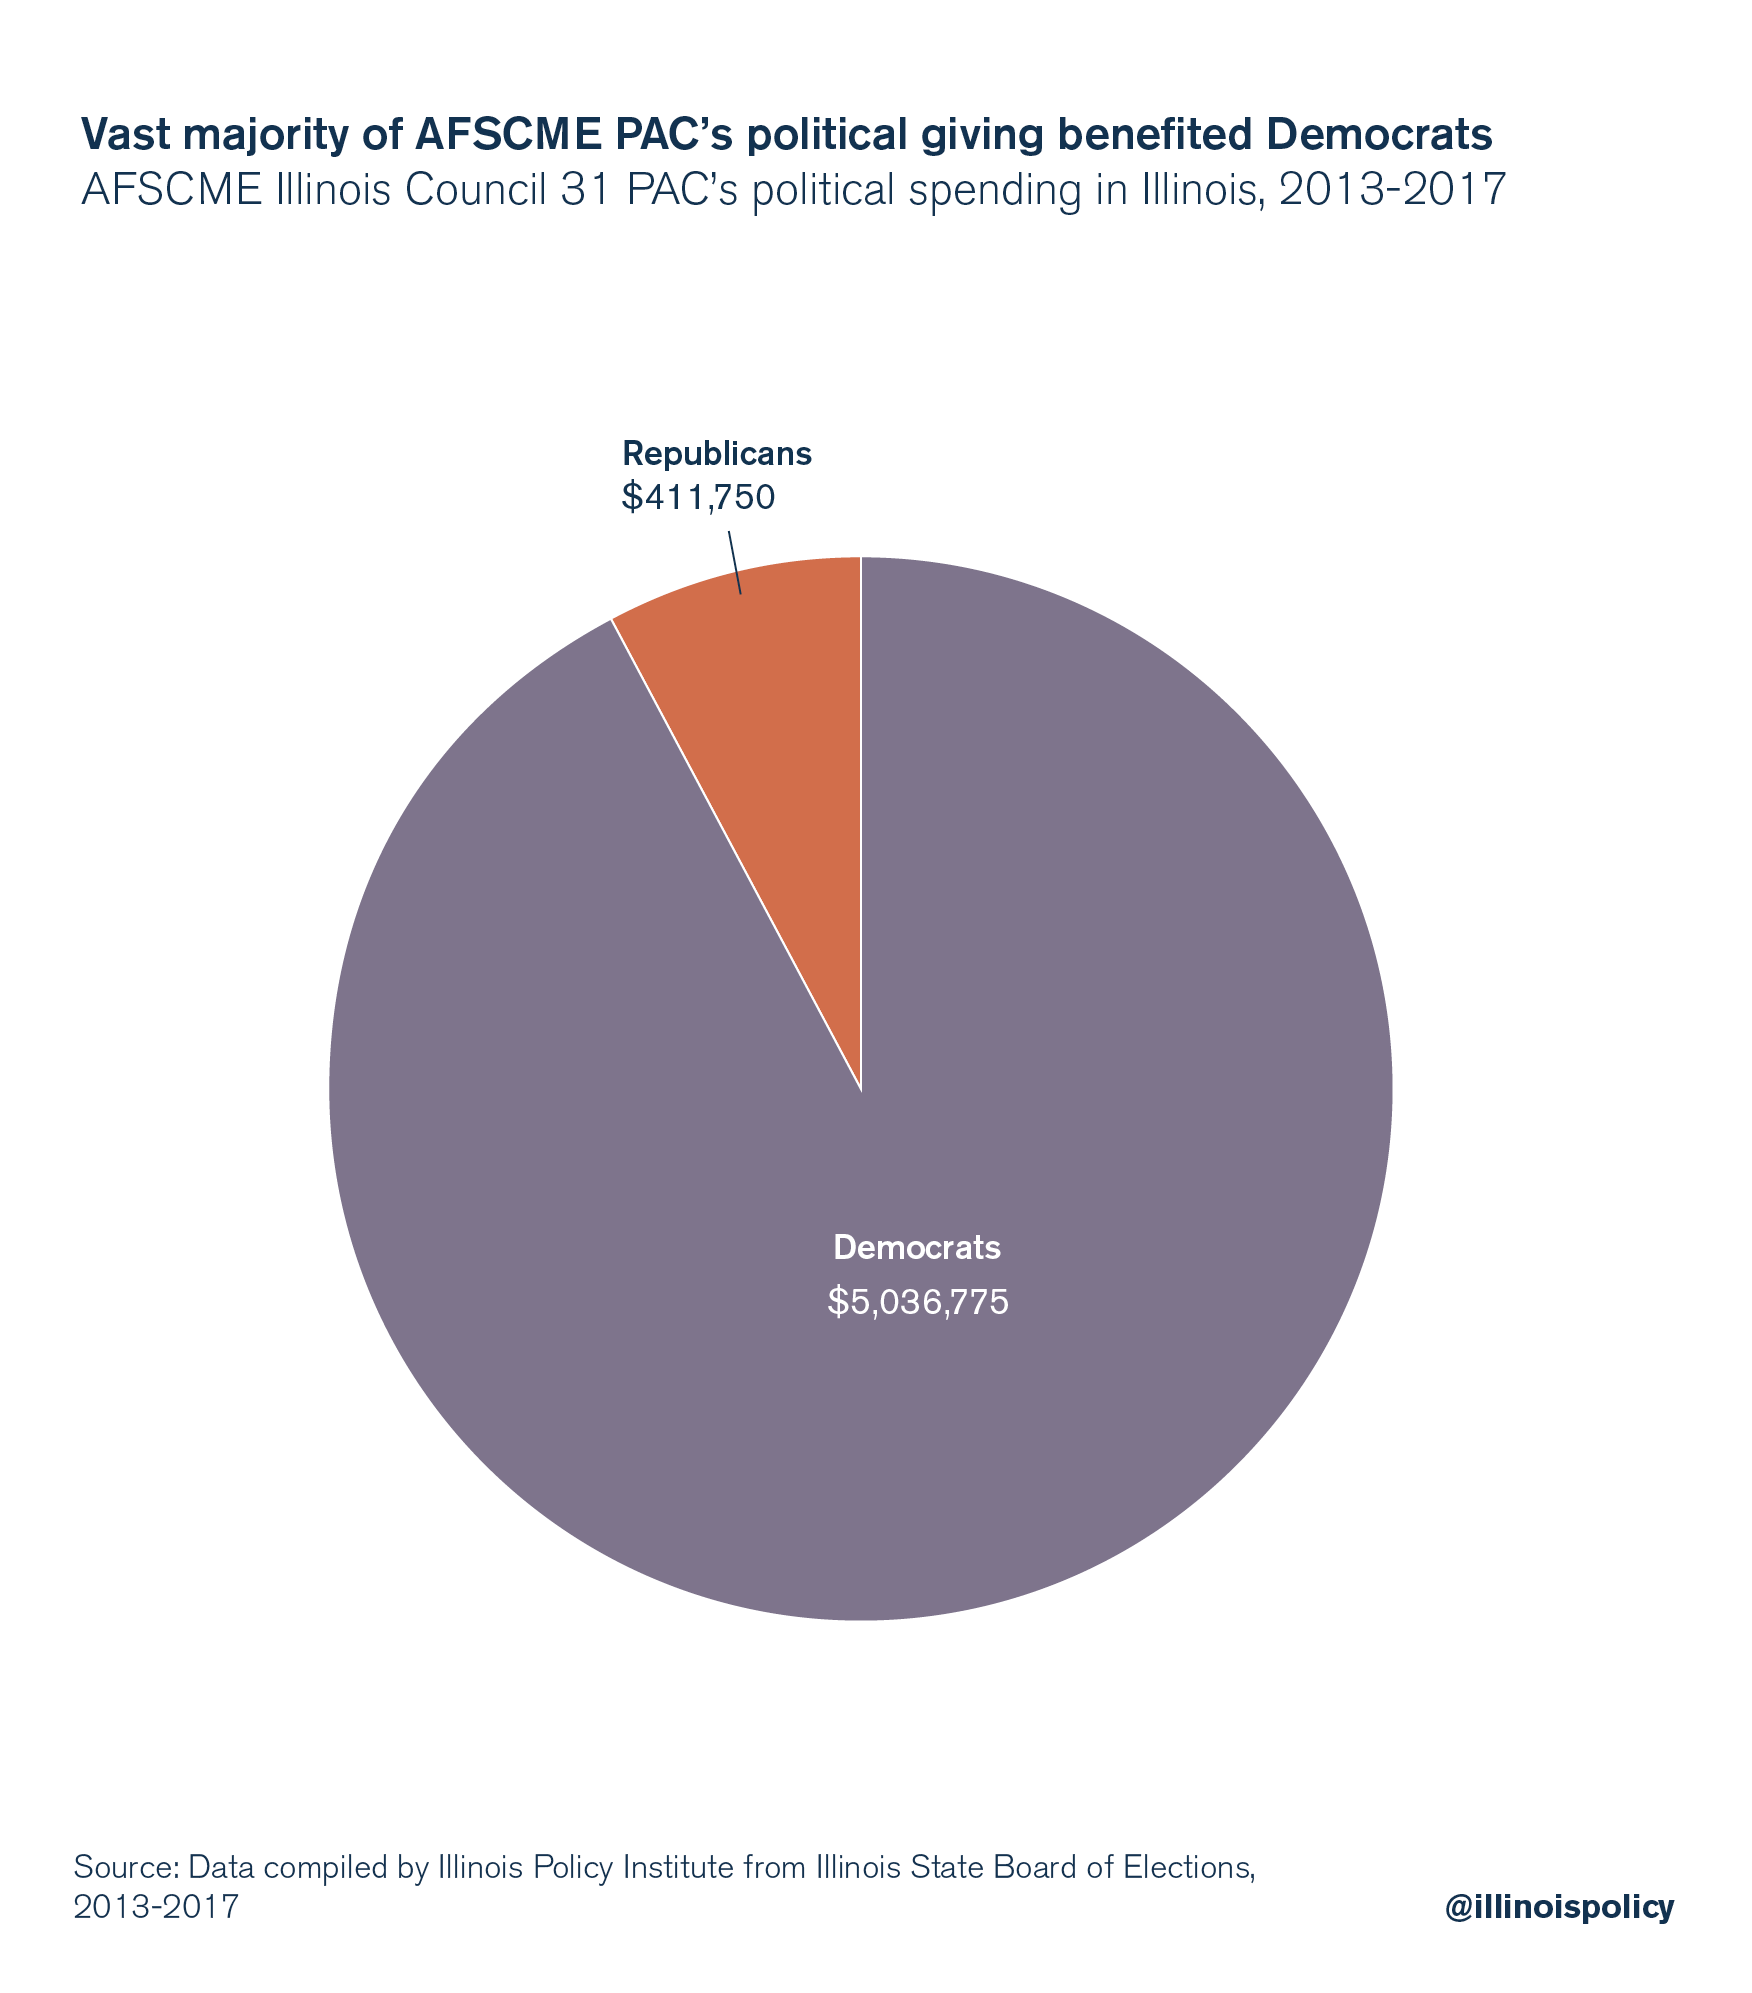 Vast majority of AFSCME PAC's political giving benefited Democrats